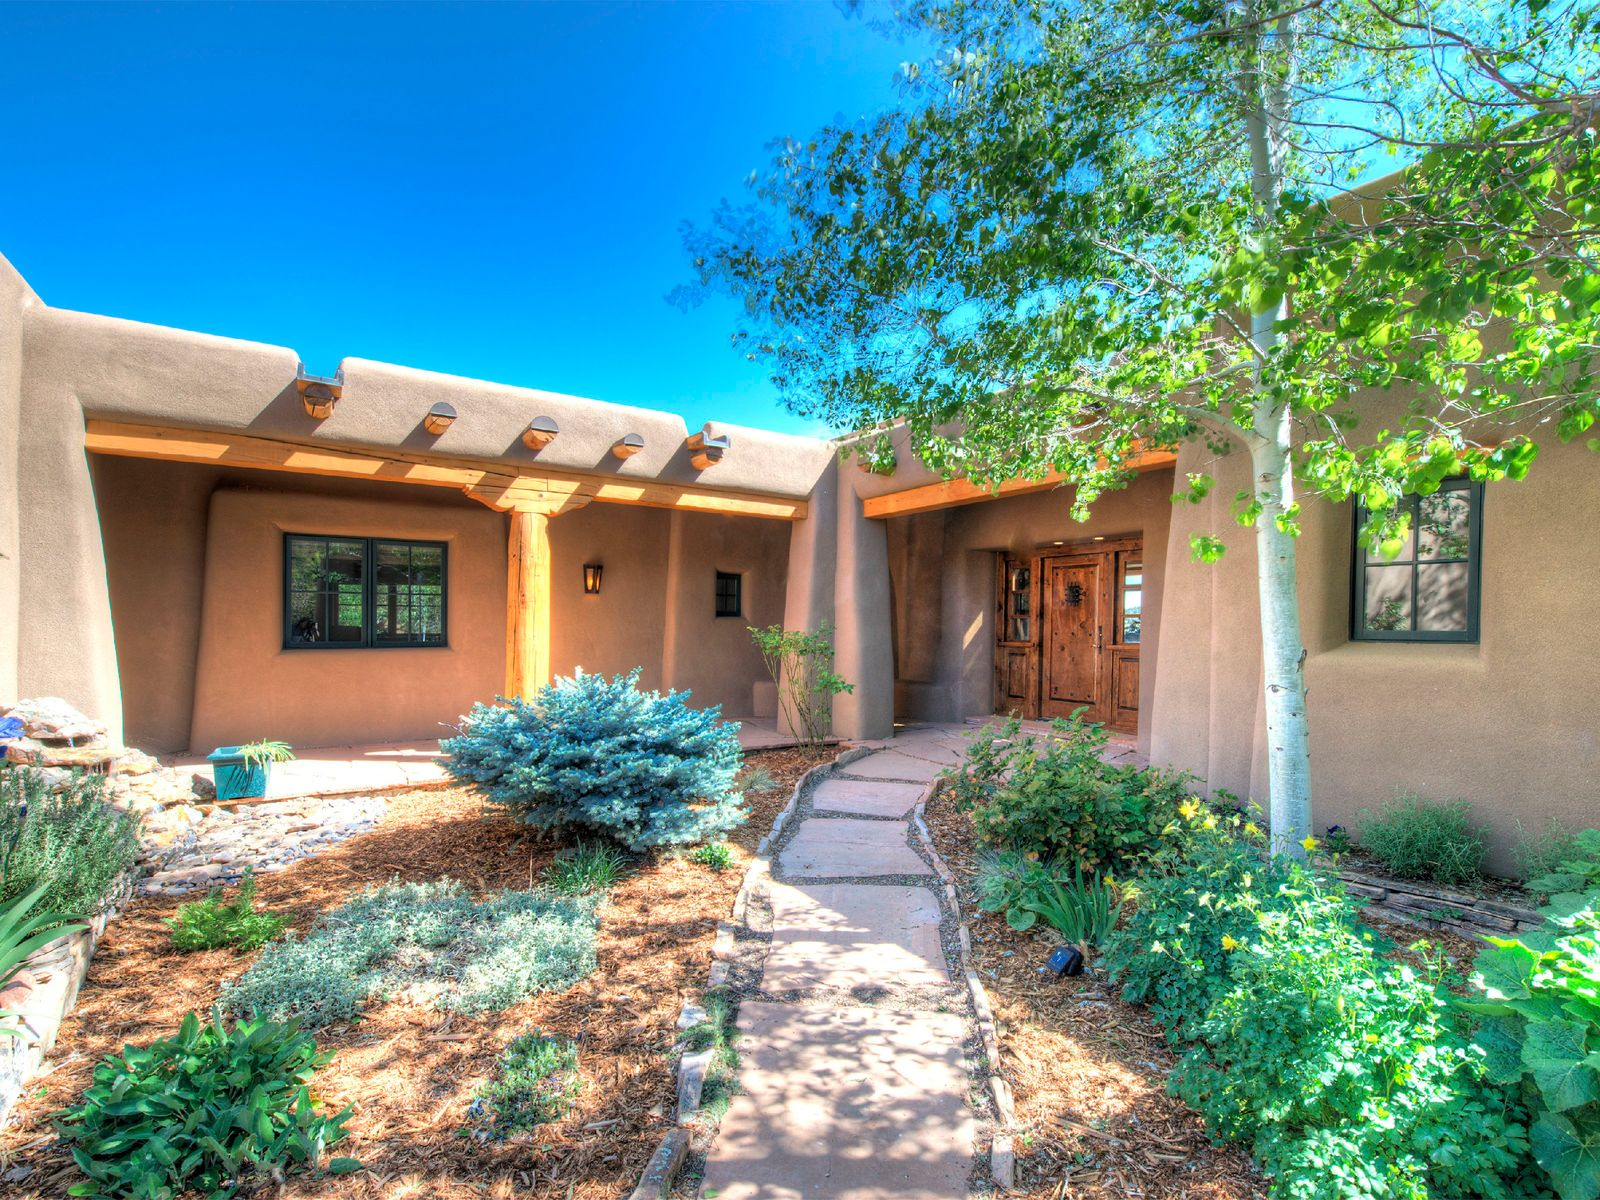 Impeccable Southwestern Home , Santa Fe NM Single Family Home - Santa Fe Real Estate